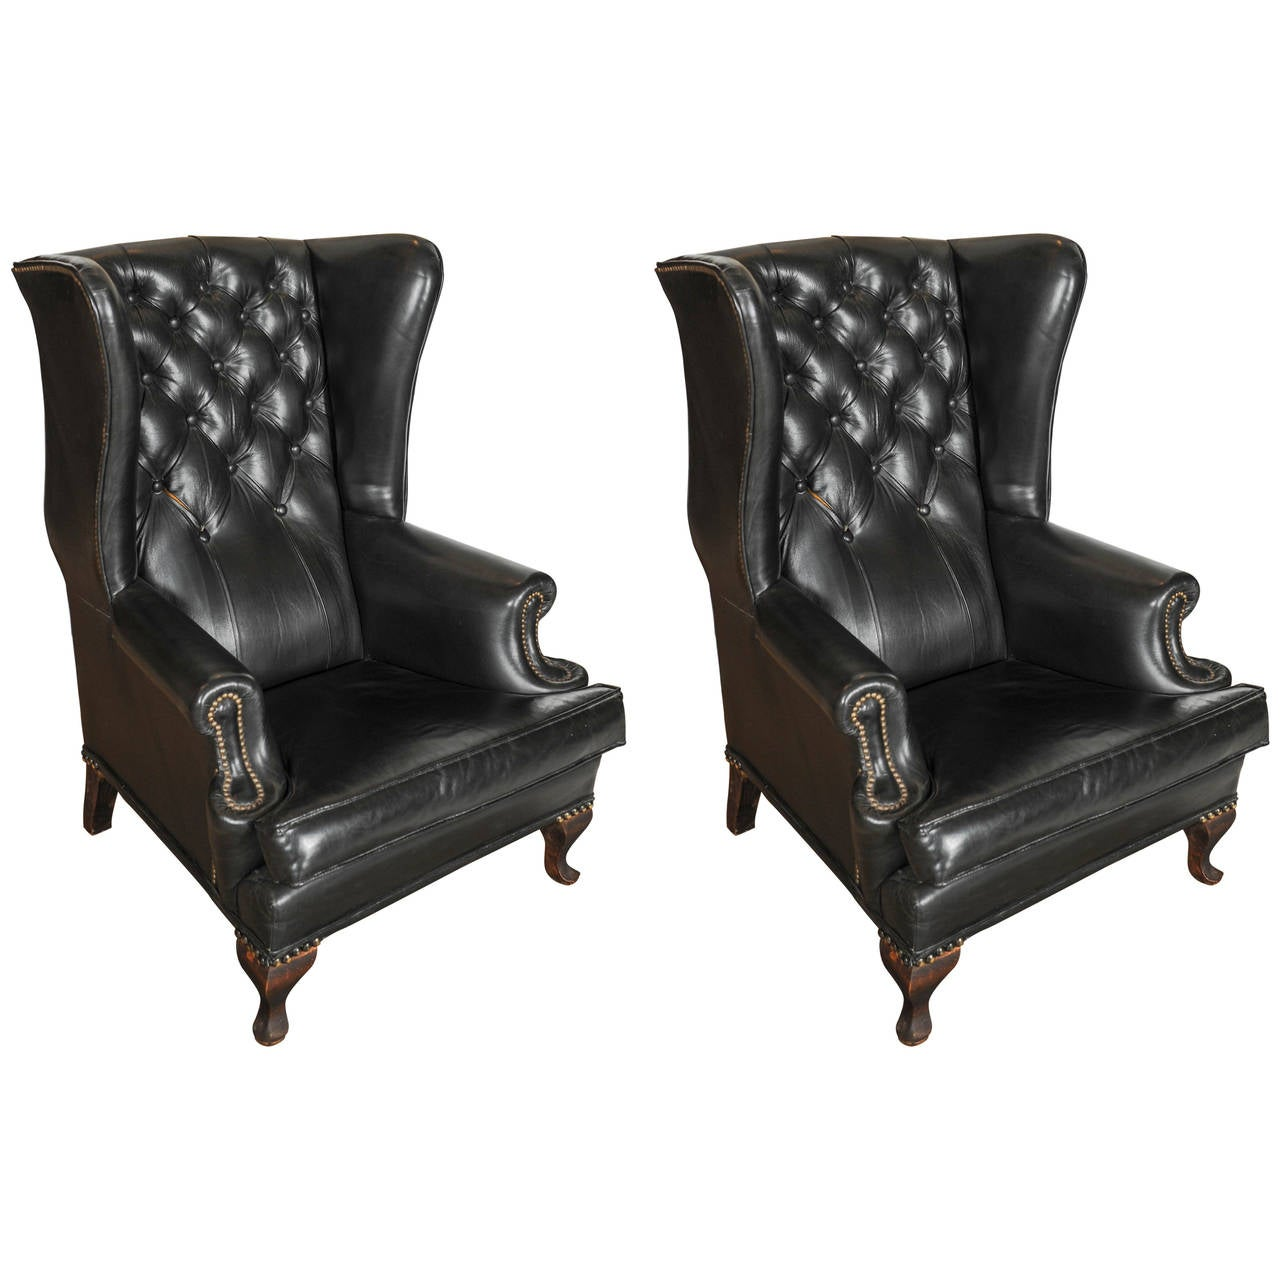 French Club Chair A Pair Of Early 20th C French Black Leather Upholstered